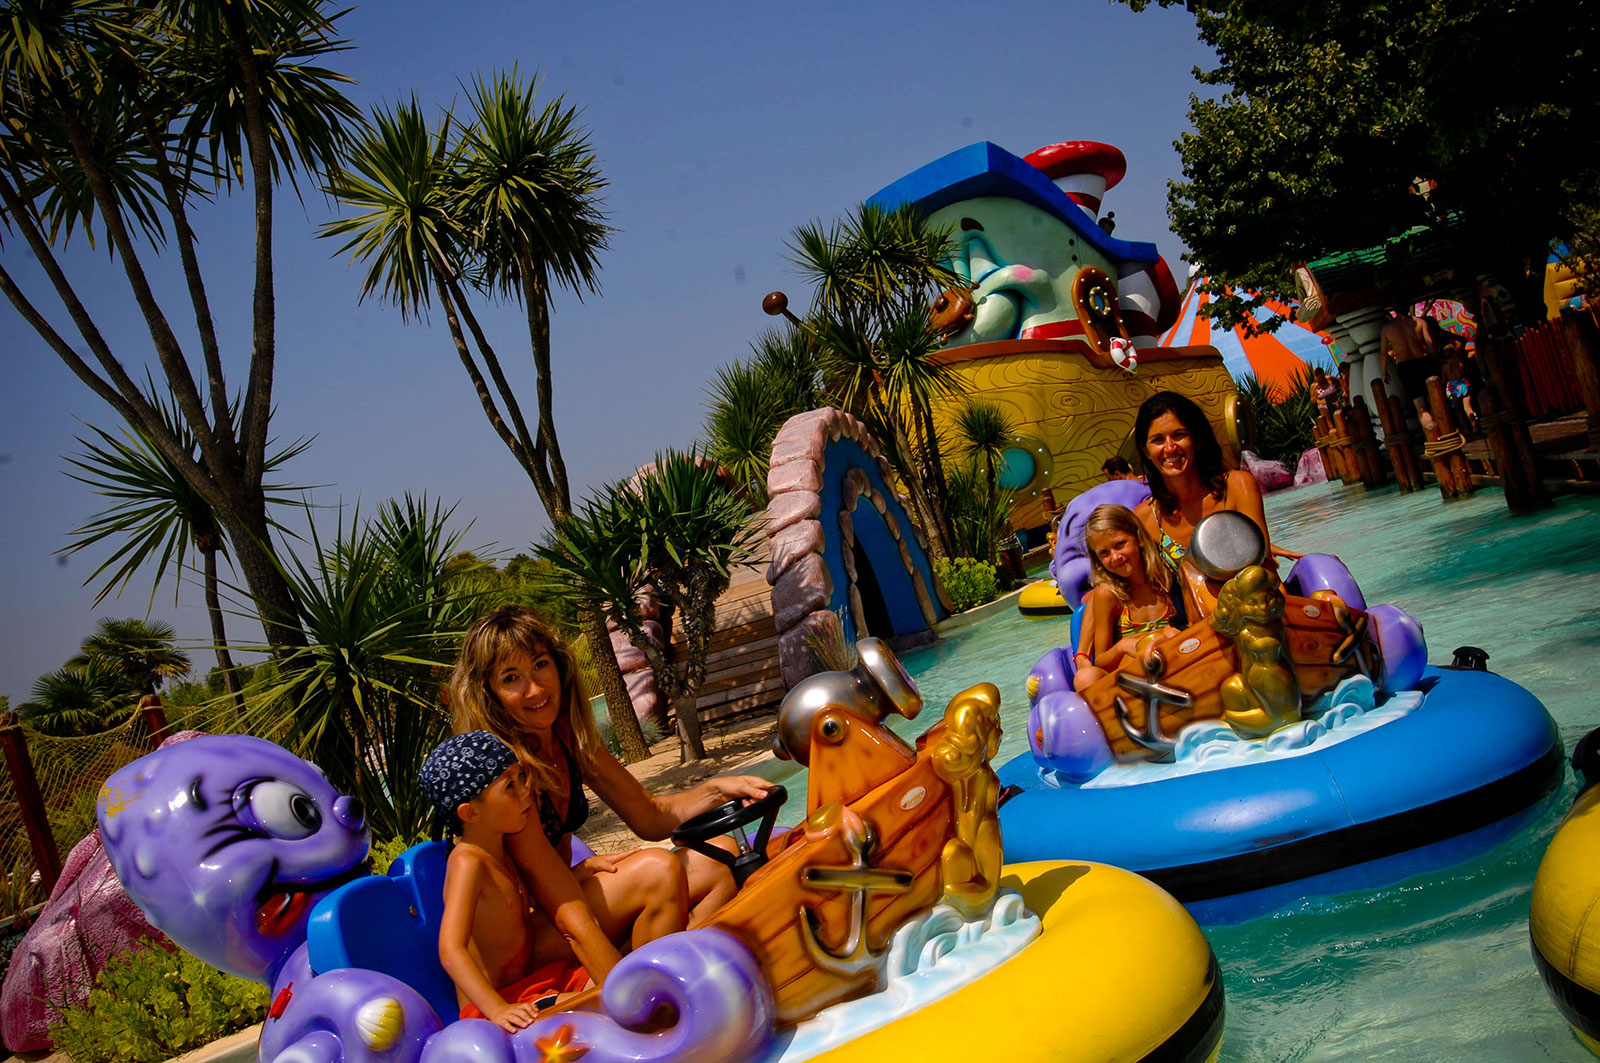 4-Jesolo-Aqualandia---waterpretpark